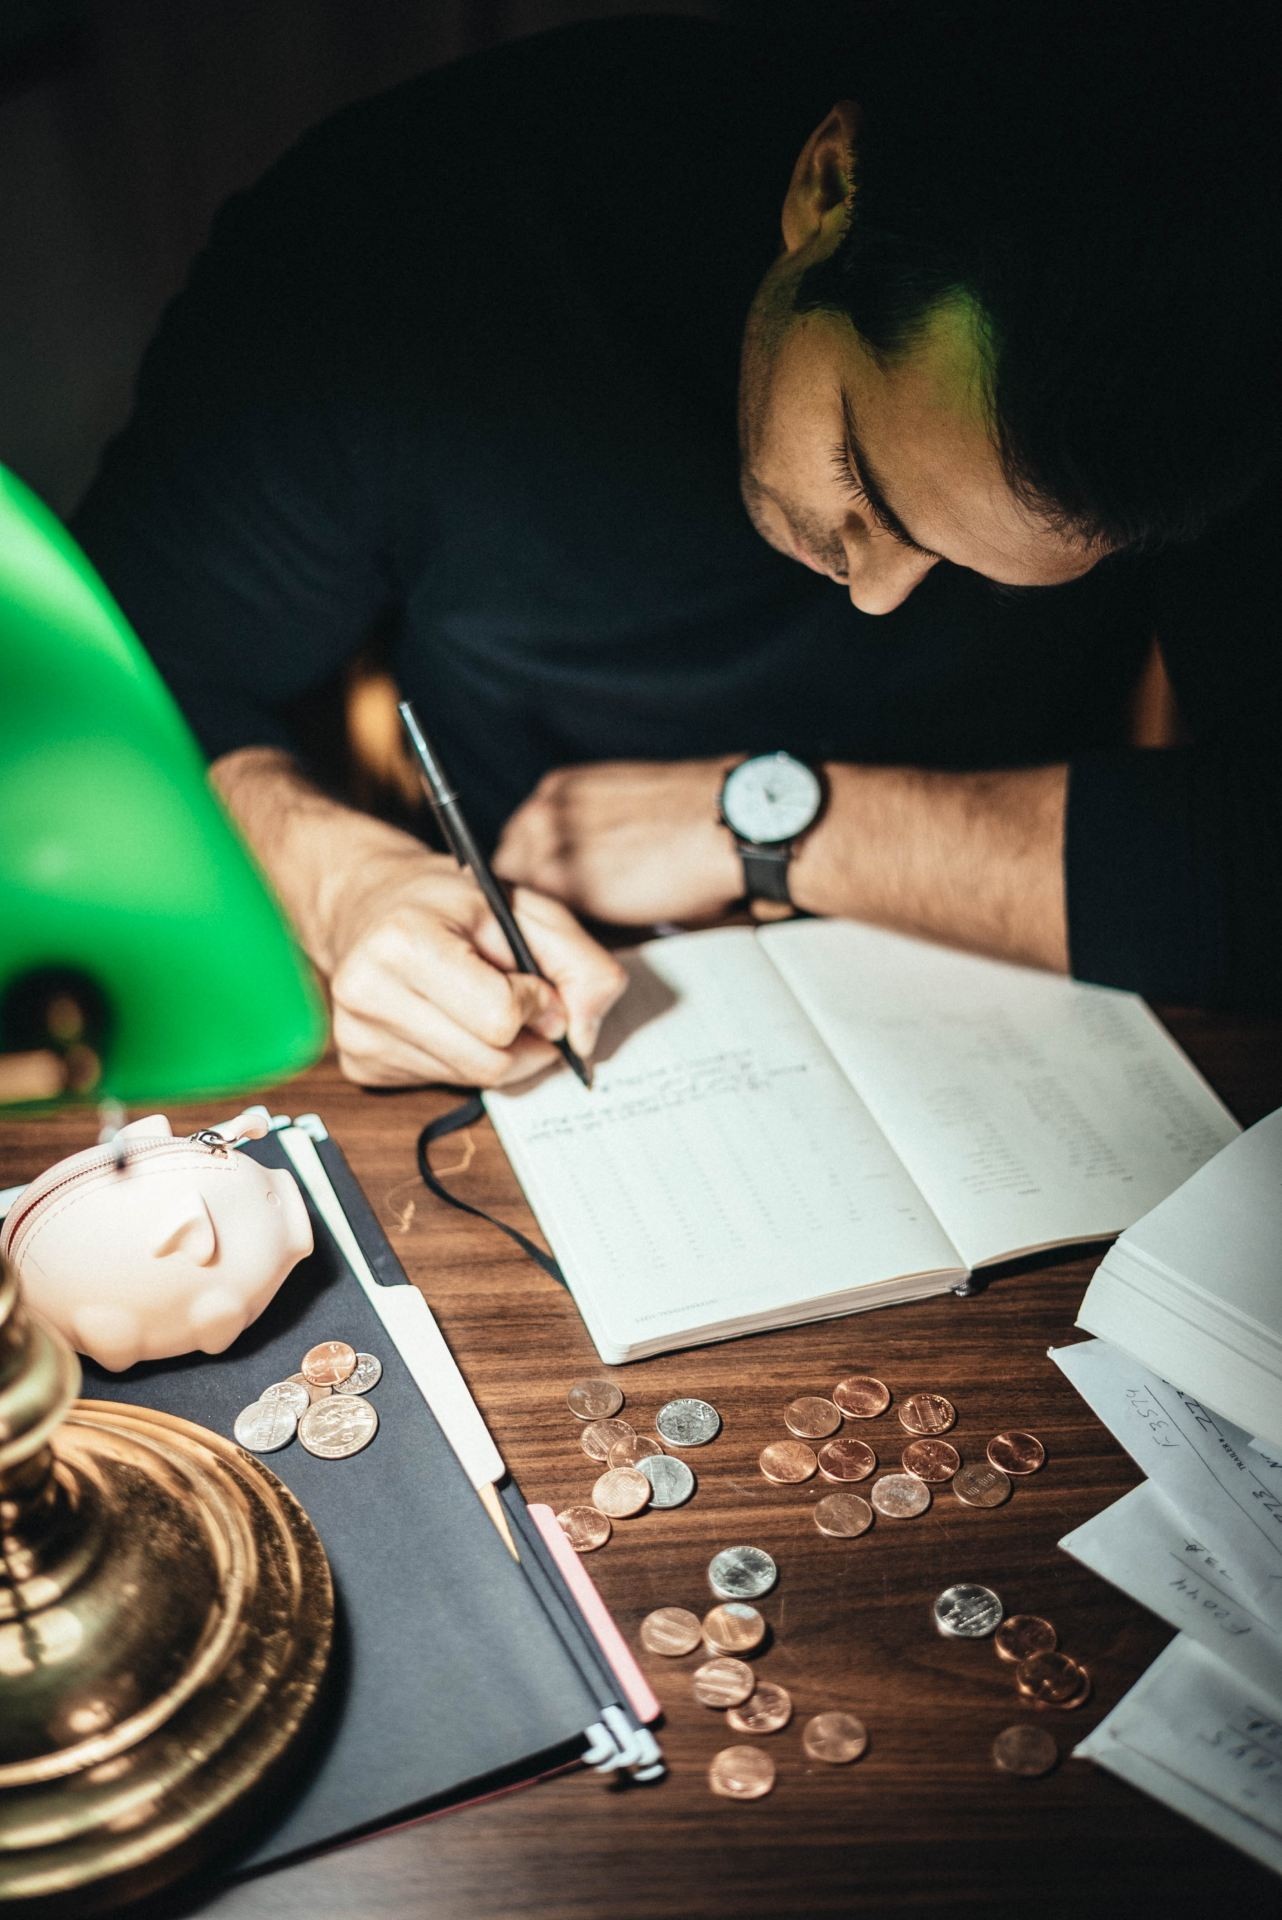 Man writing in a ledger. In front of him are coins and a piggy bank.